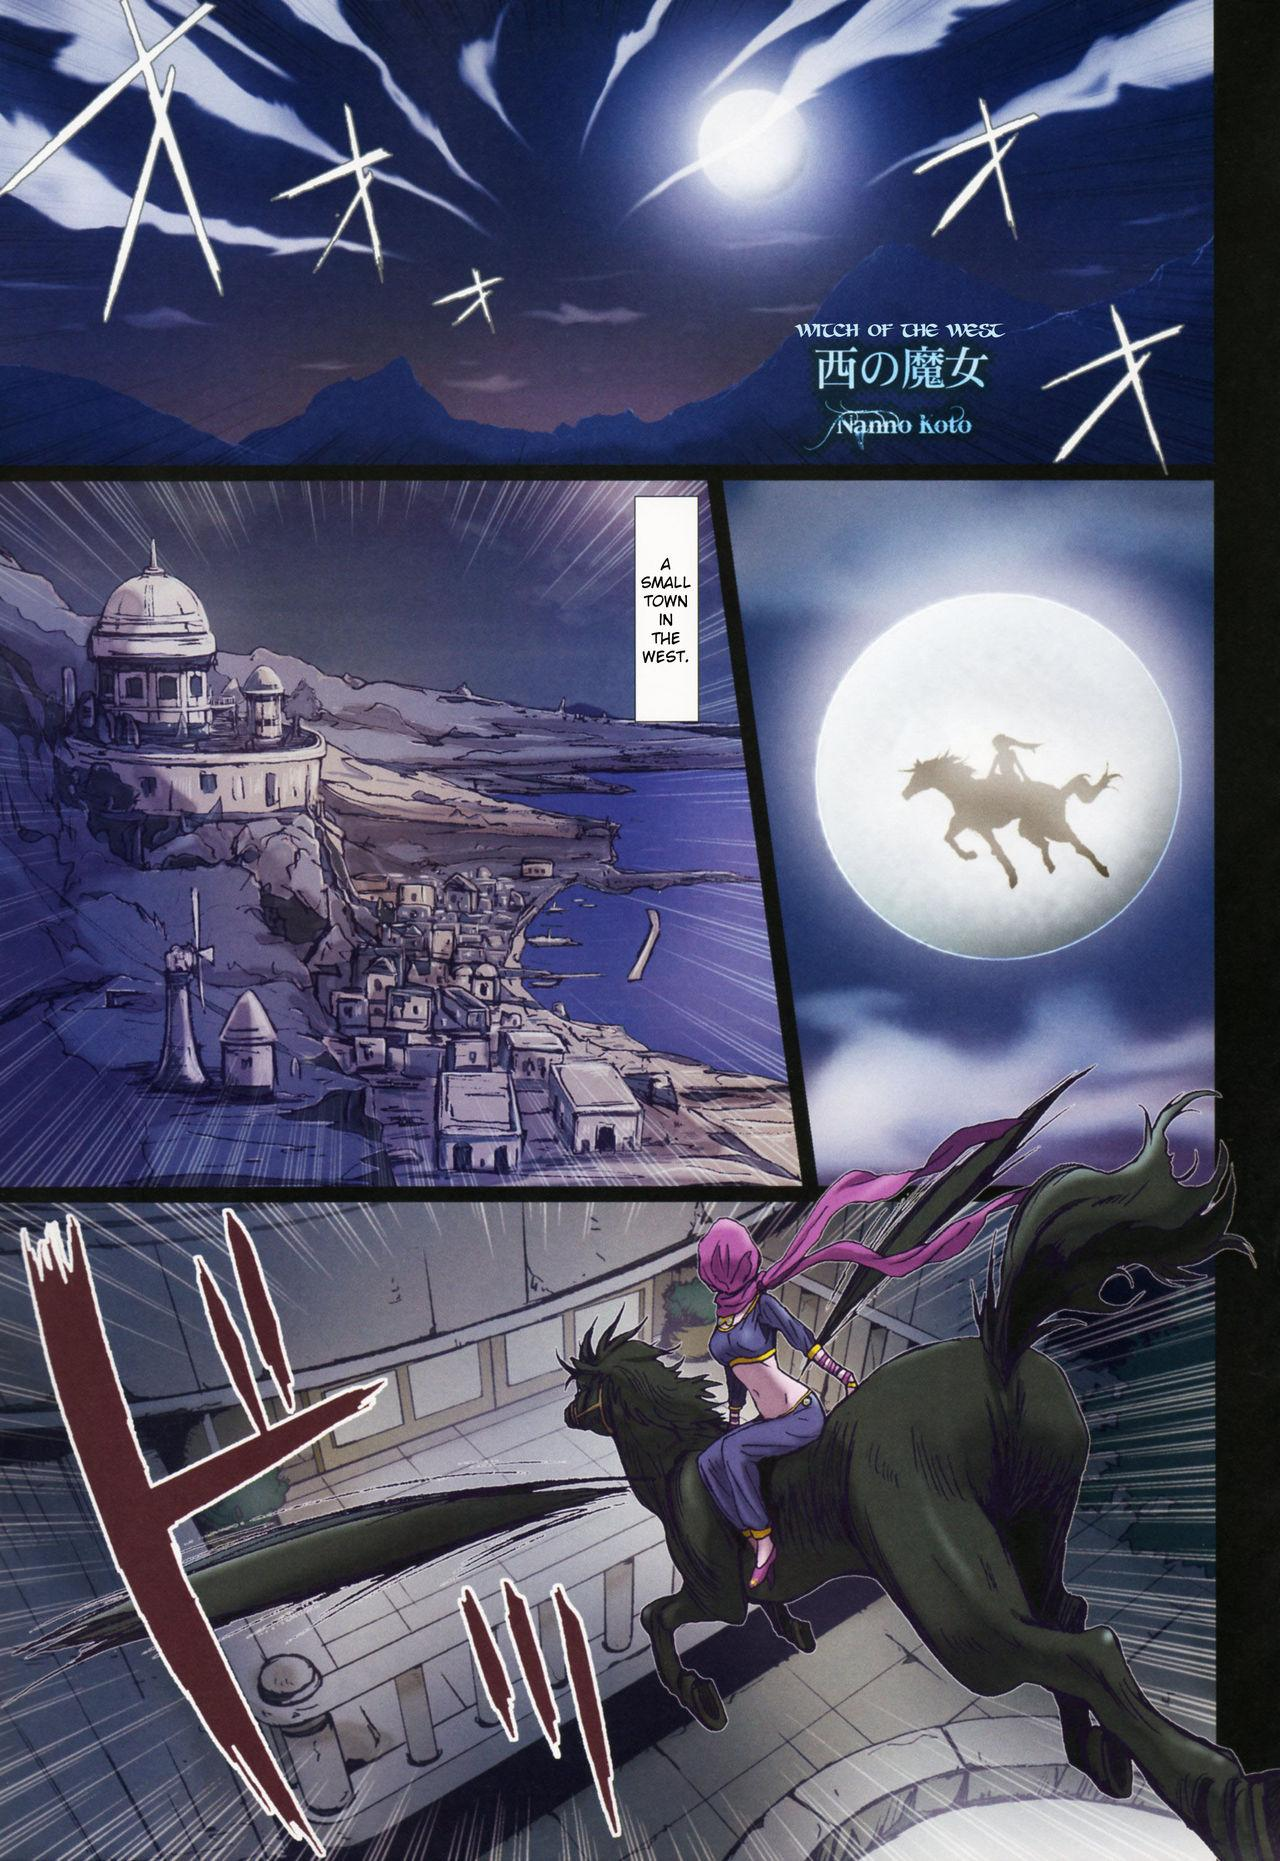 (C88) [STUDIO PAL (Nanno Koto)] Other Zone 5 ~Nishi no Majo~ | Other Zone 5 ~The Witch of the West~ (Wizard of Oz) [English] {Kenren} 4